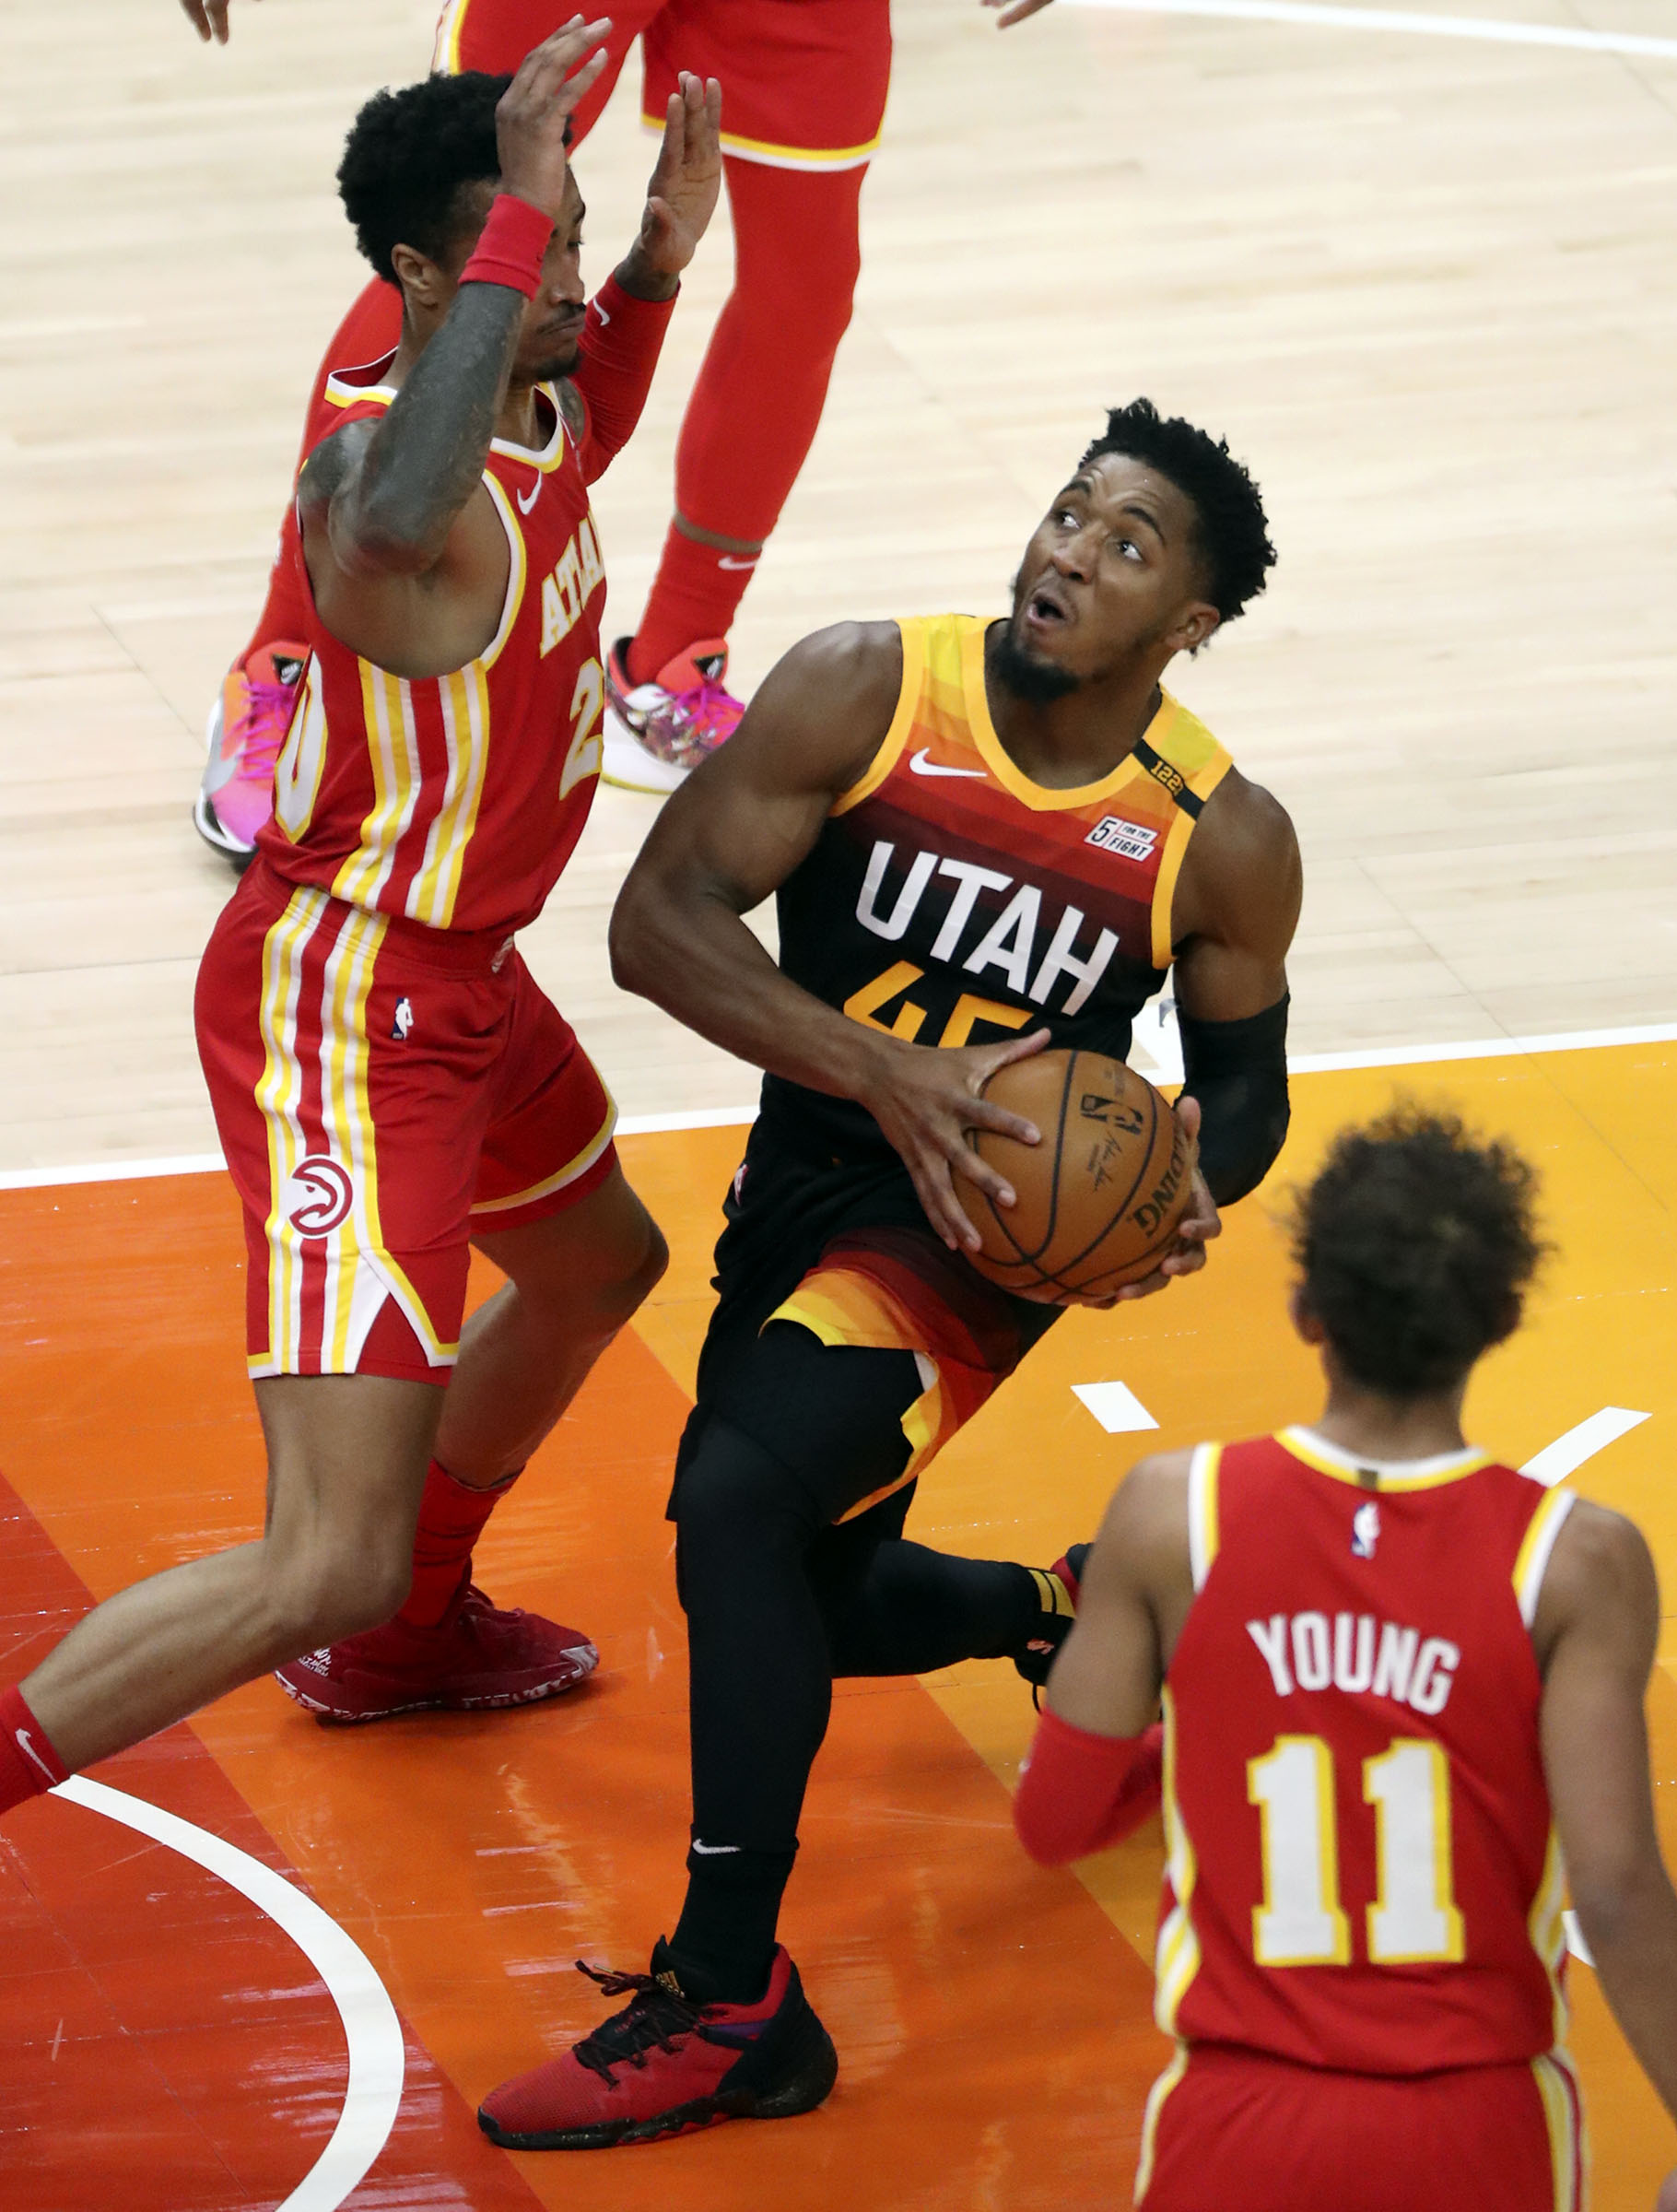 Utah Jazz guard Donovan Mitchell (45) looks to make a shot between Atlanta Hawks forward John Collins (20) and Atlanta Hawks guard Trae Young (11) during an NBA game at Vivint Smart Home Arena in Salt Lake City on Friday, Jan. 15, 2021. The Jazz won 116-92.